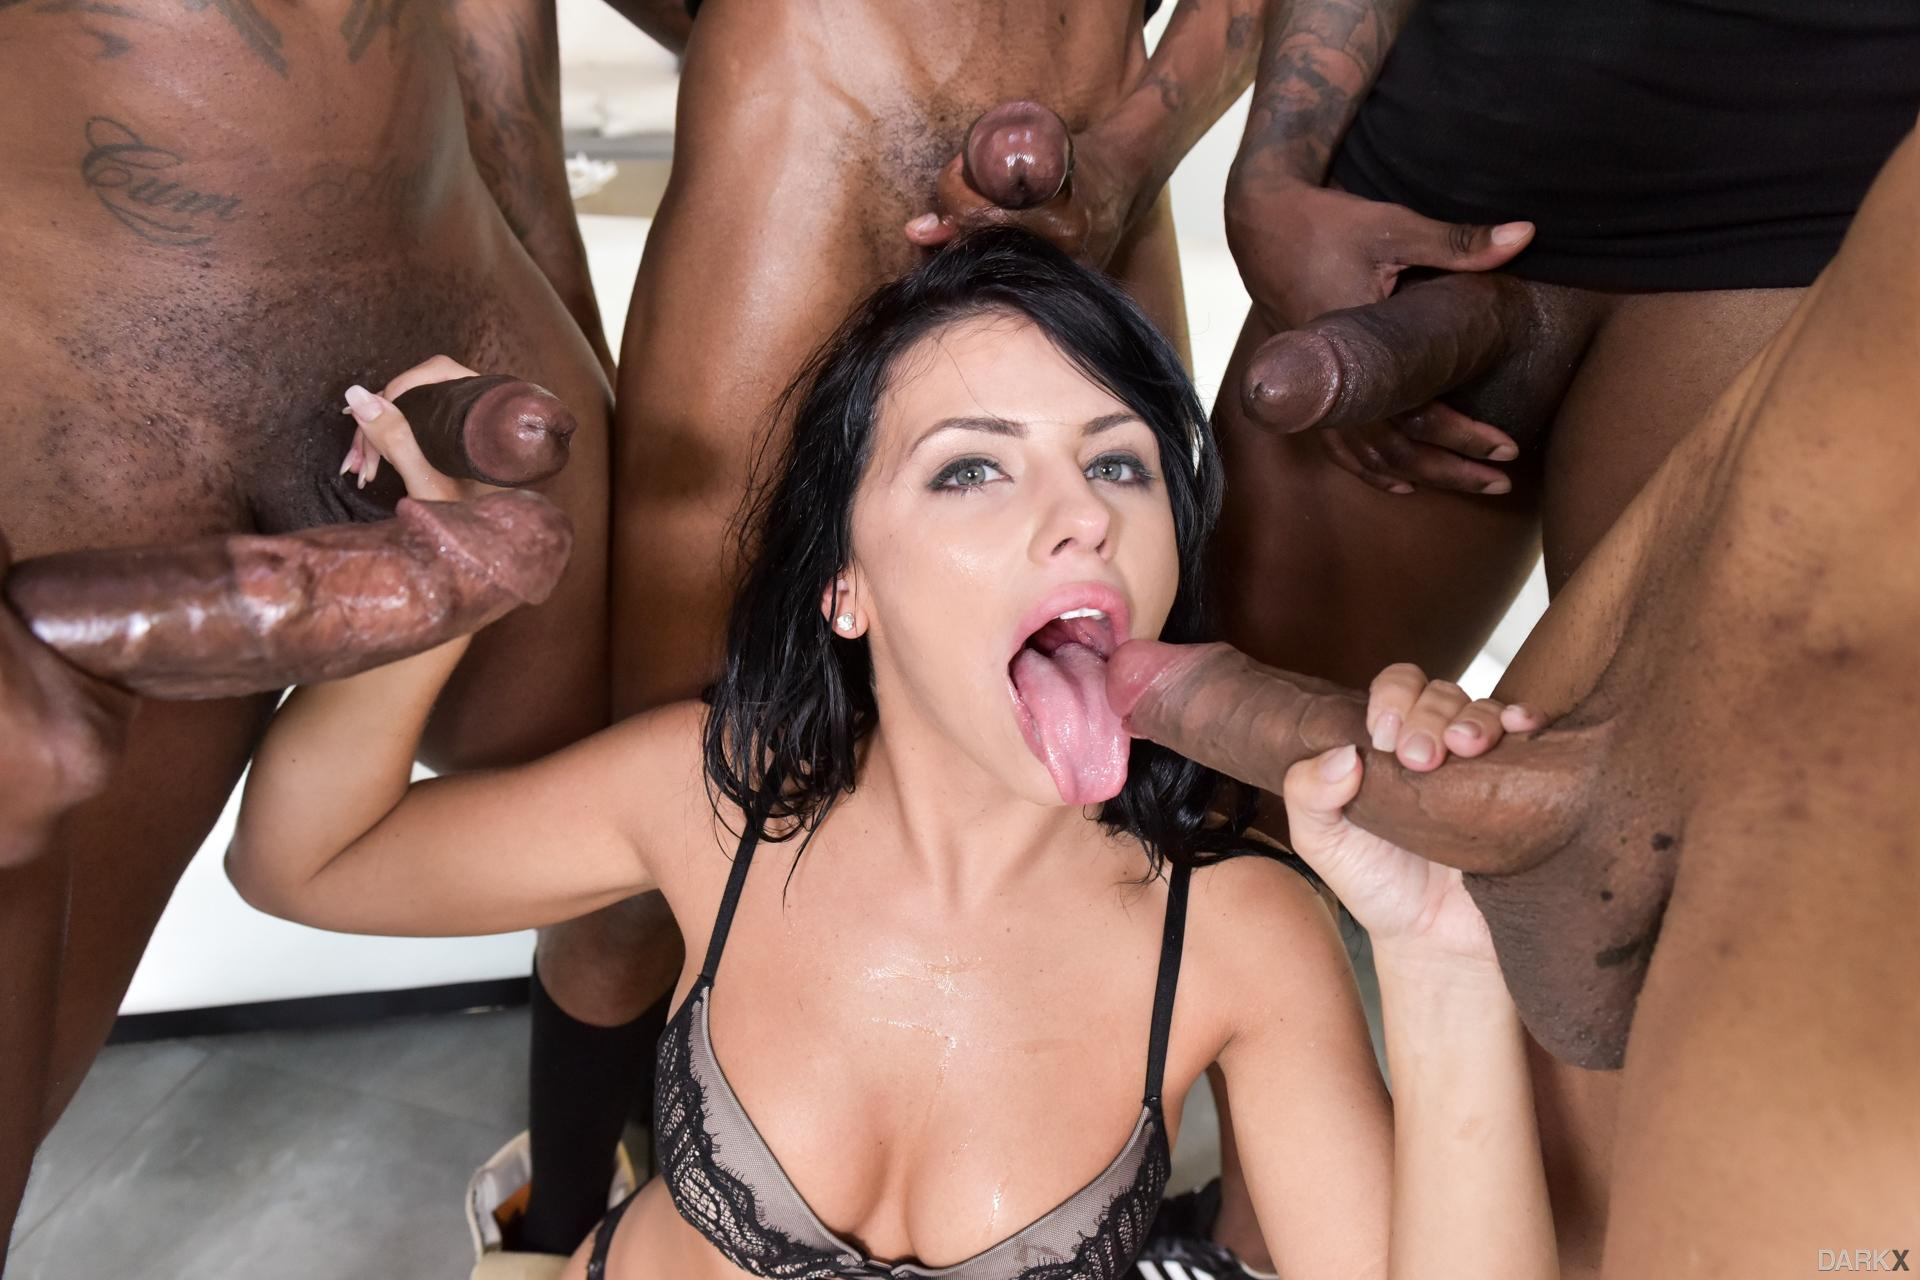 Rough and degrading gangbang